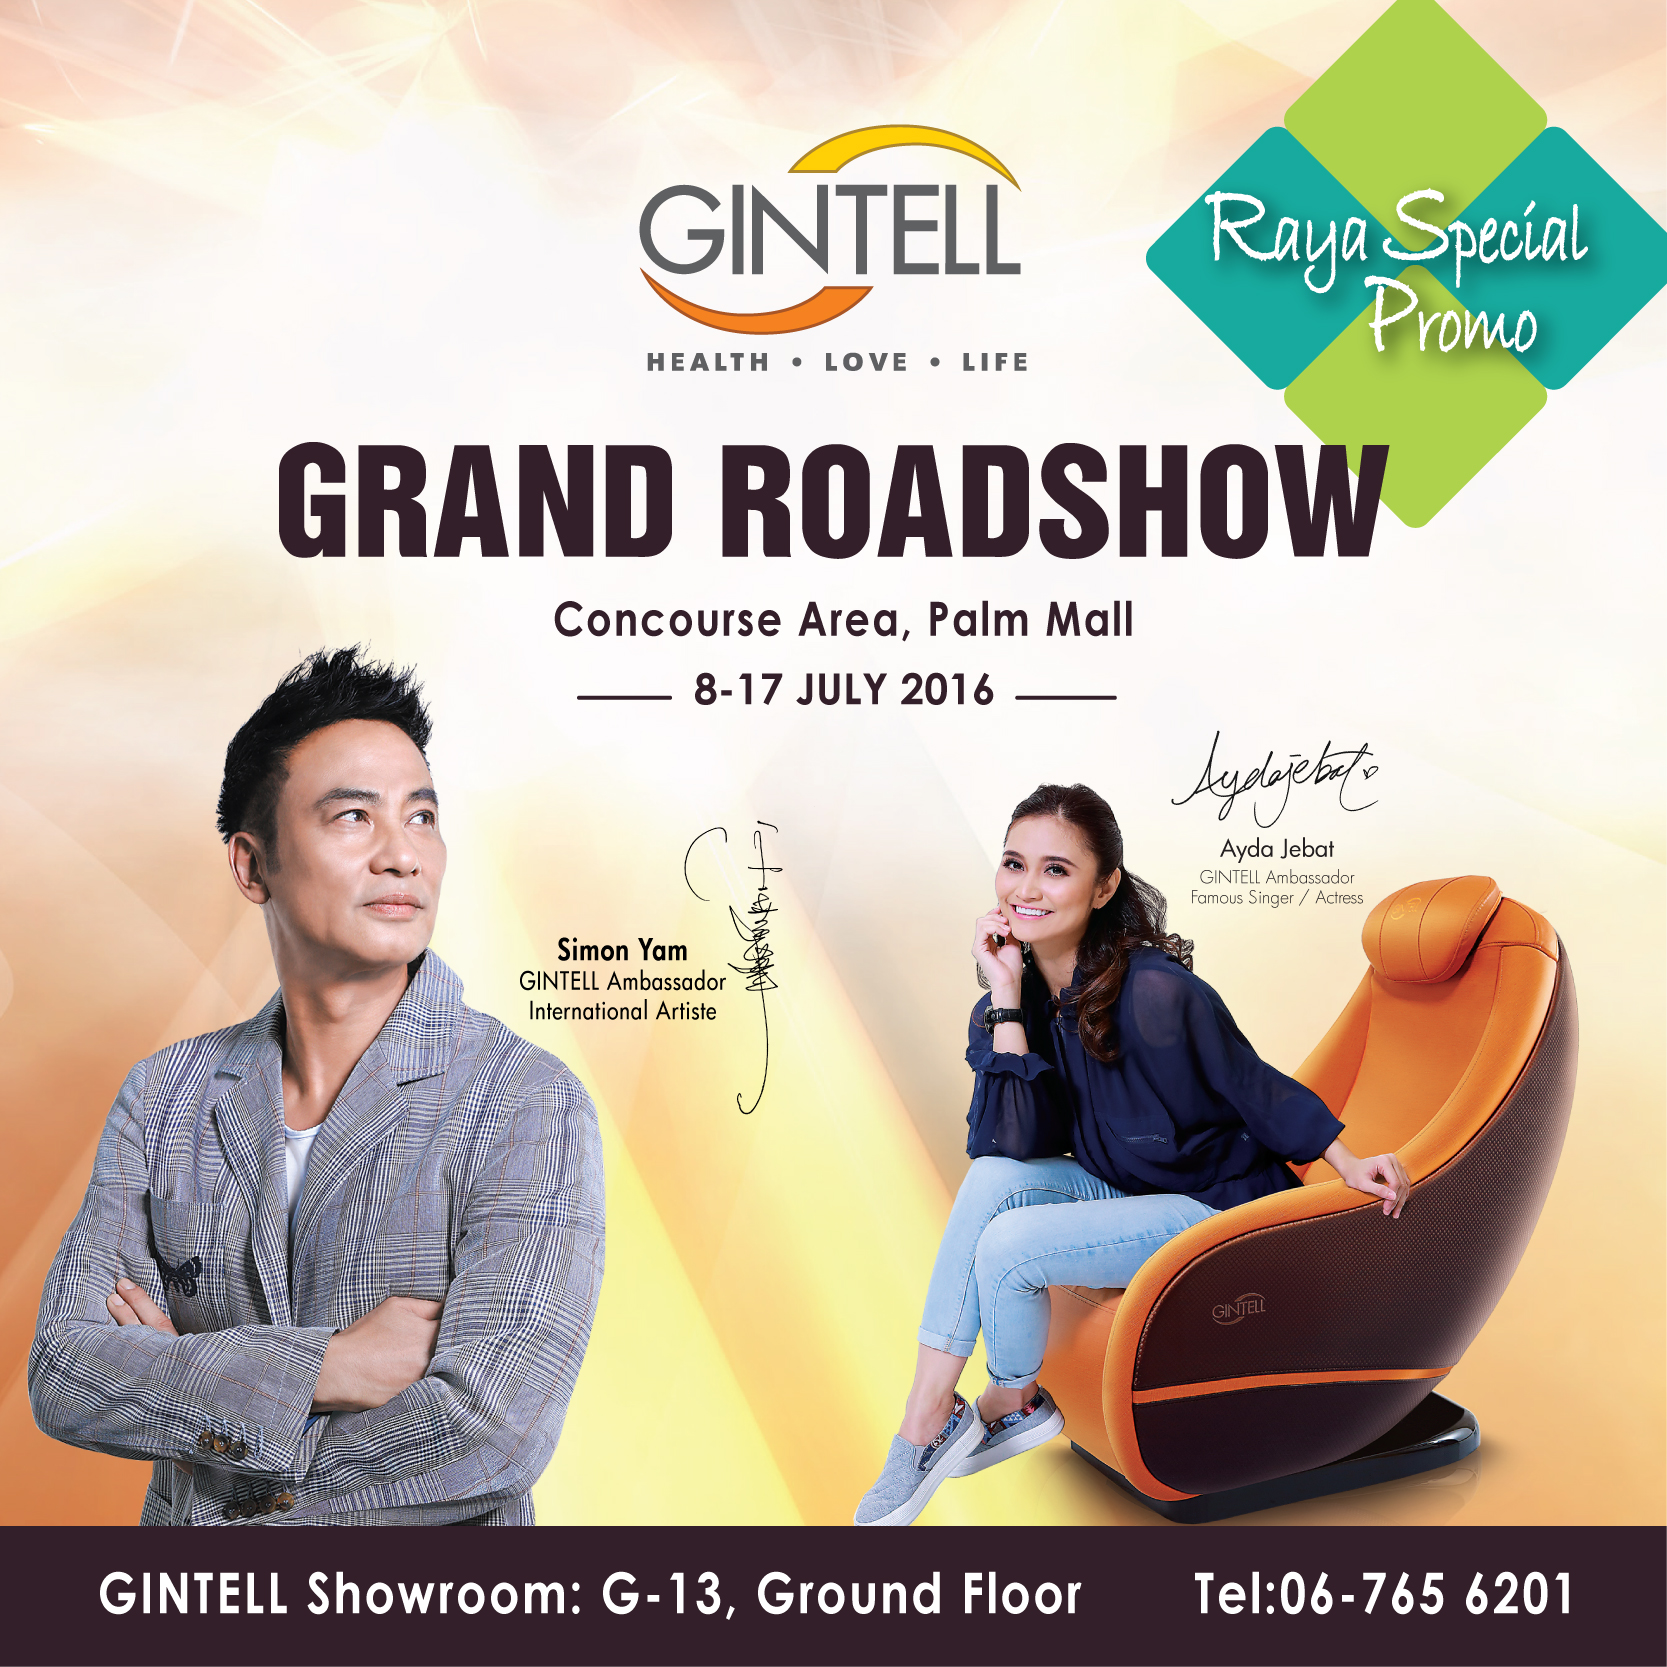 Gintell Grand Roadshow